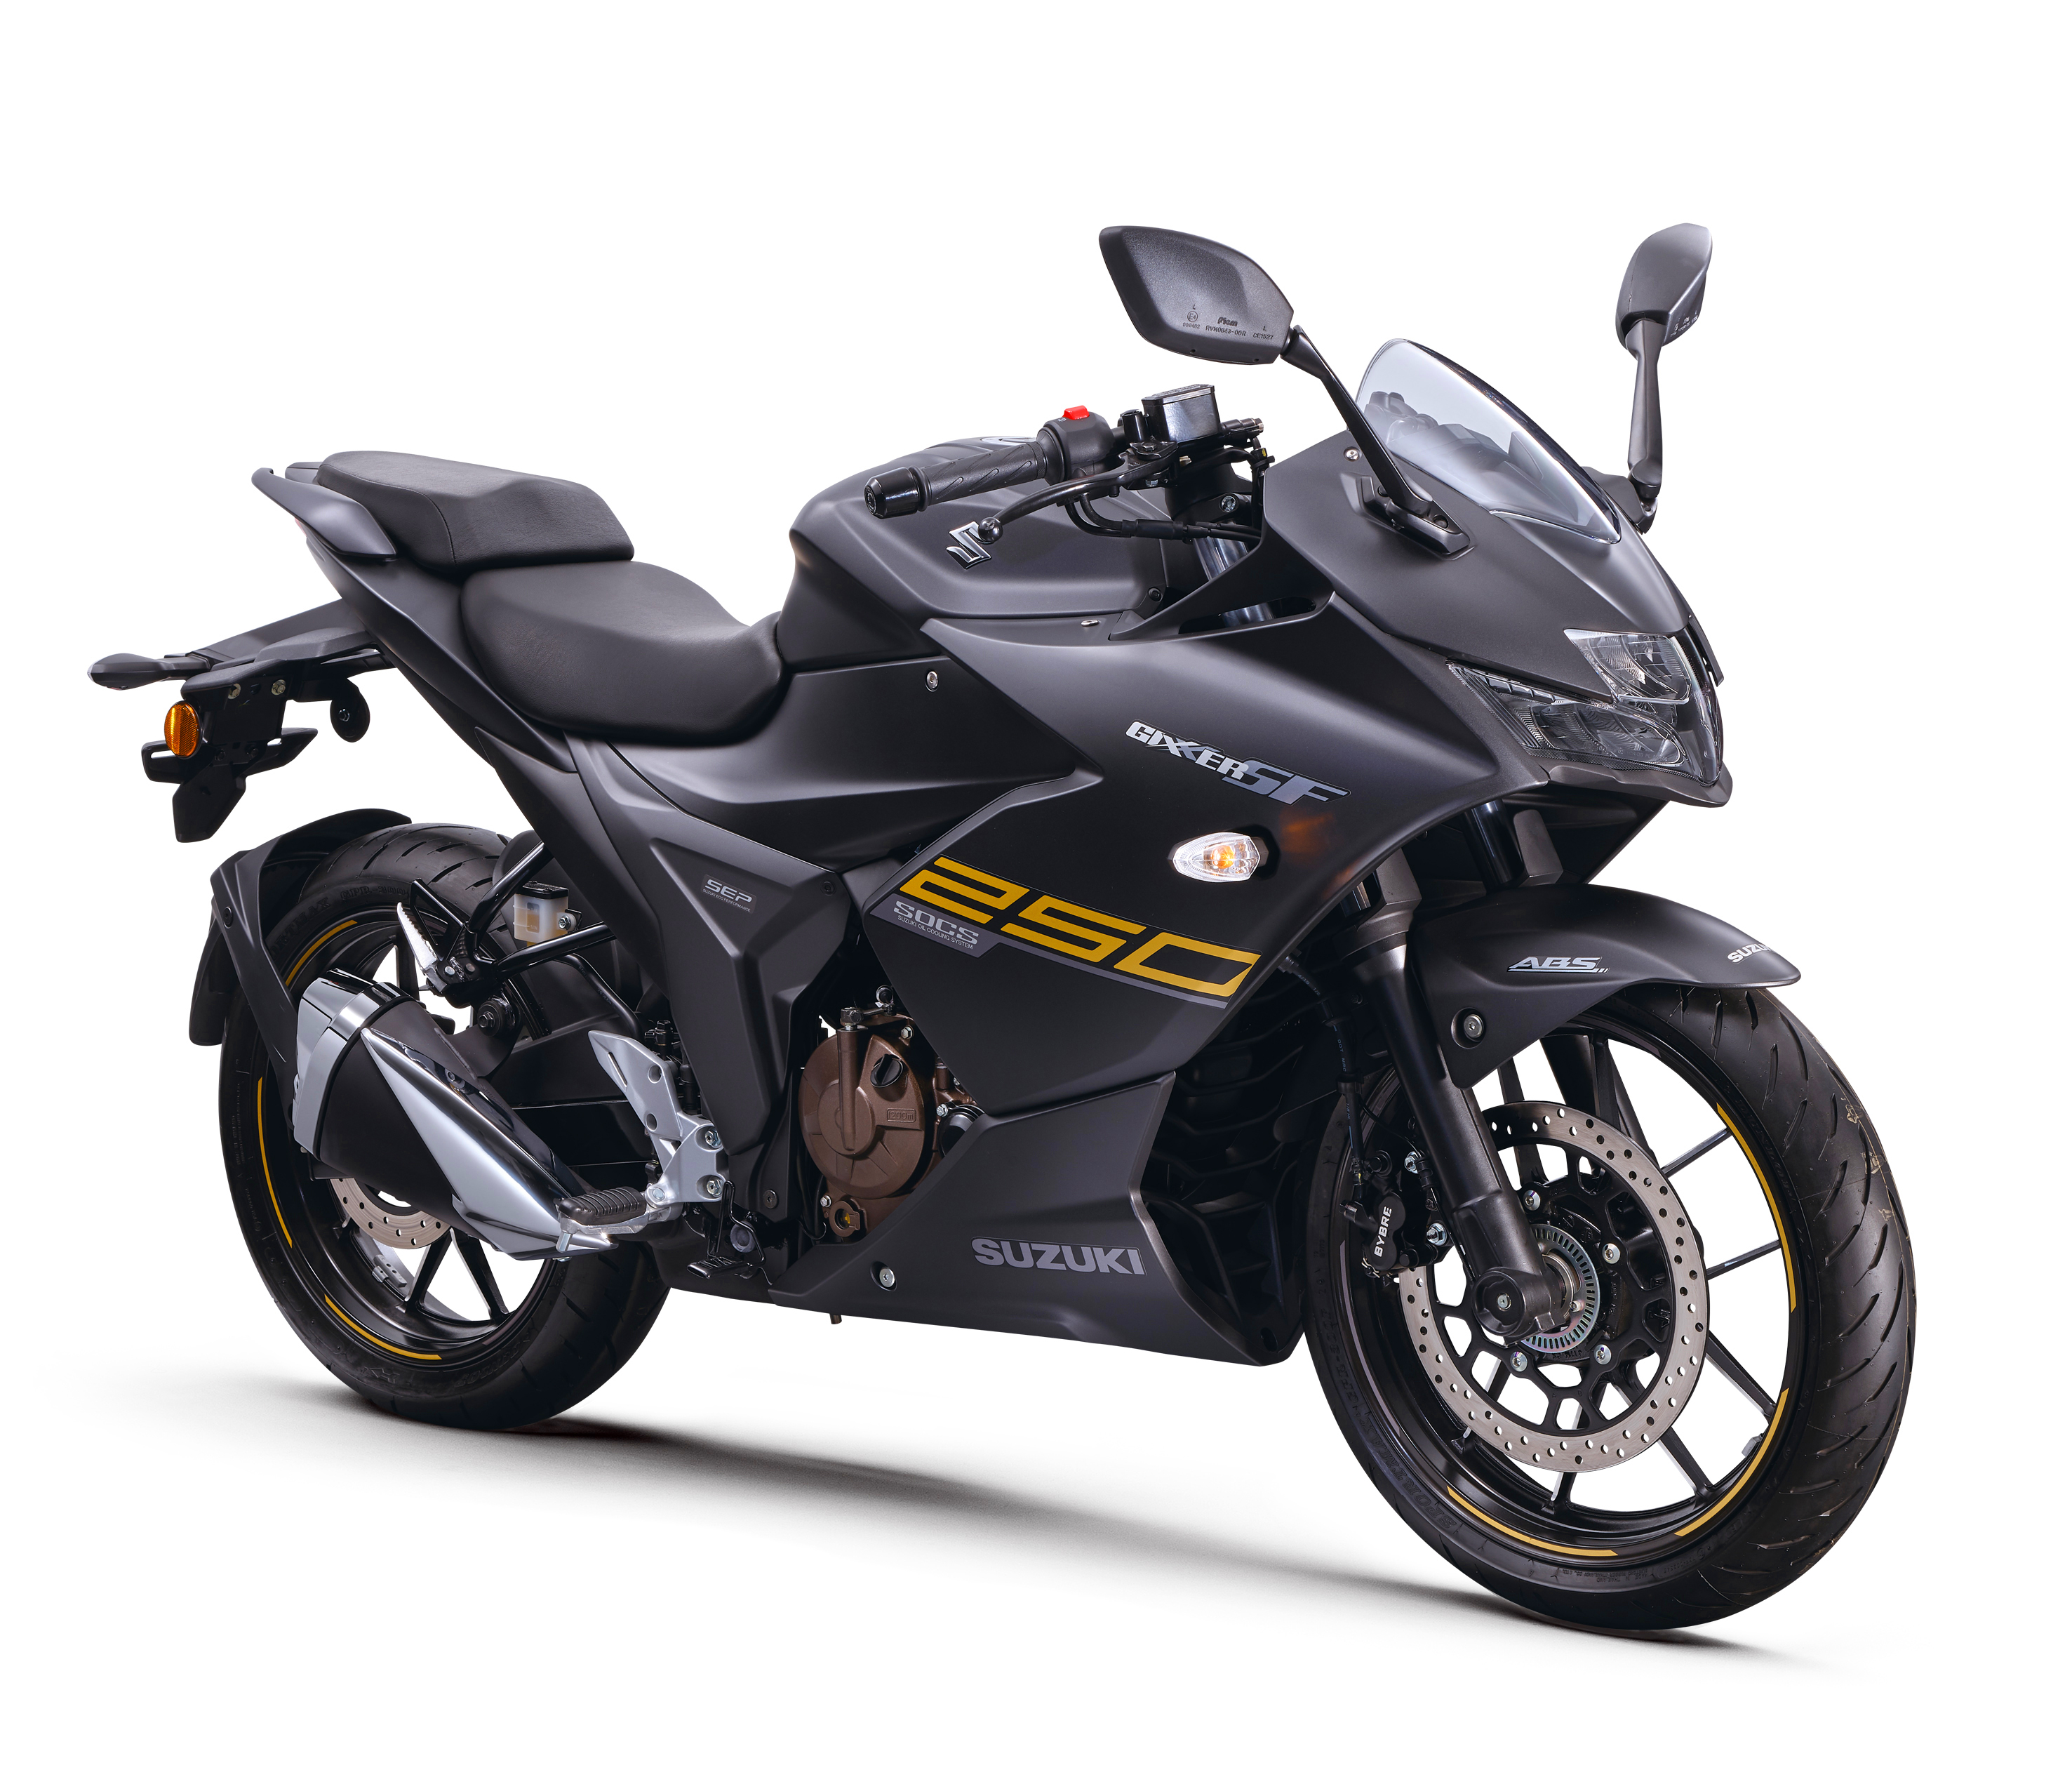 2021 GixxerSF250_黑金_out_S250cm